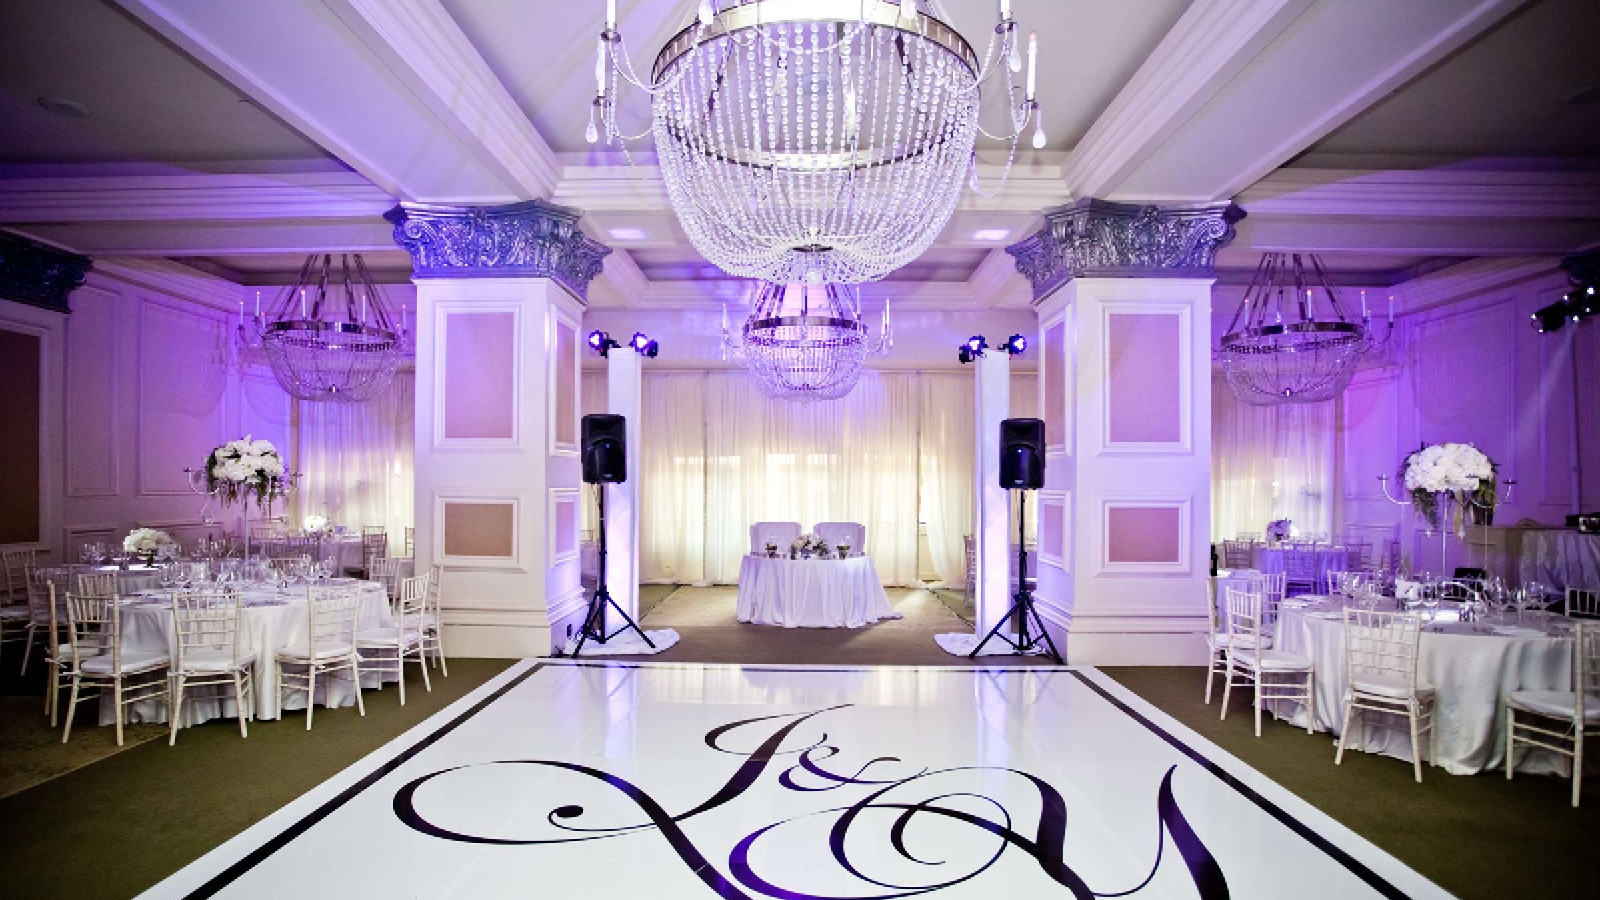 Wedding Venue – A Place to Enter in New Phase of Life